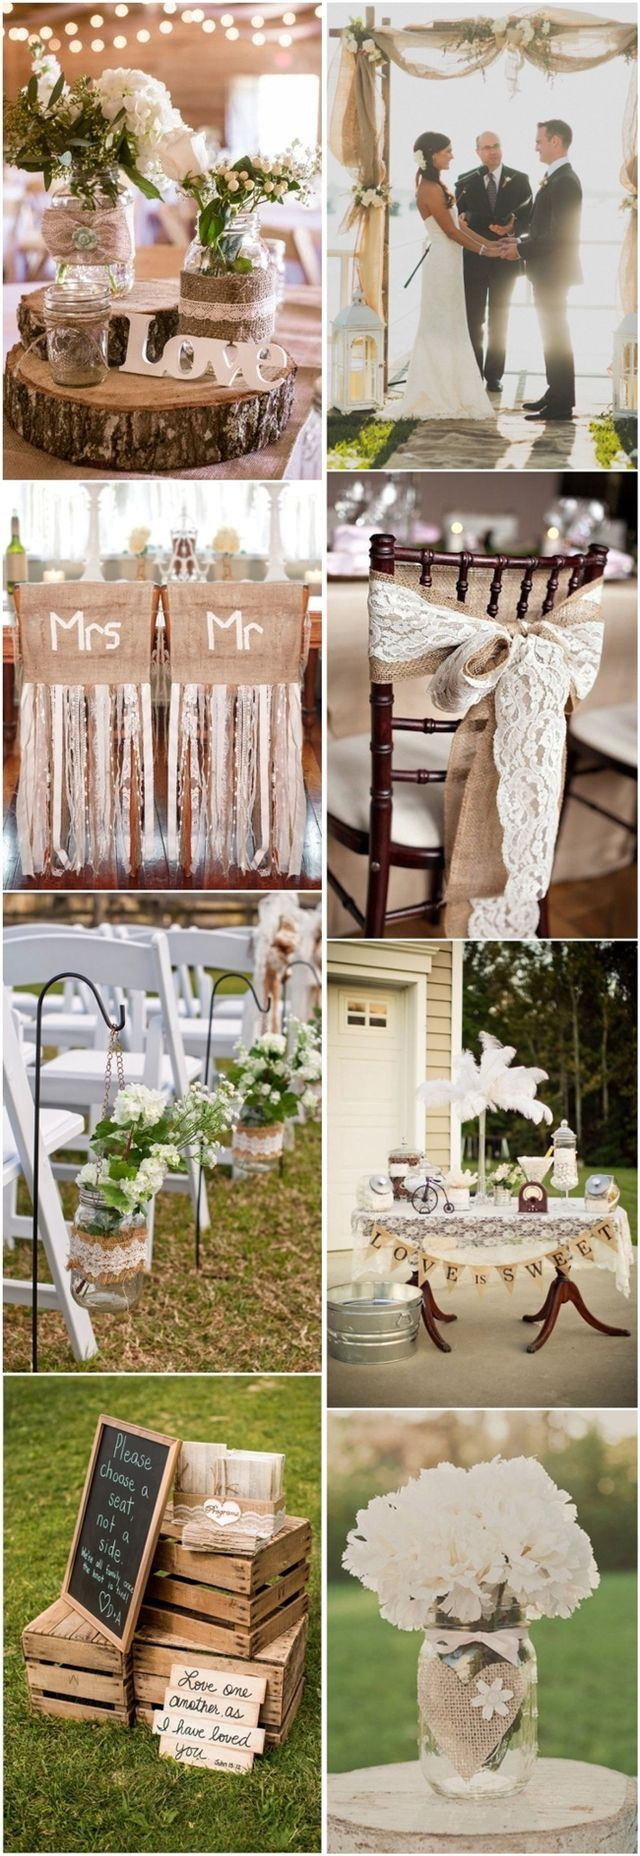 Wedding decorations for house january 2019  best Wedding Decorations images on Pinterest  Wedding